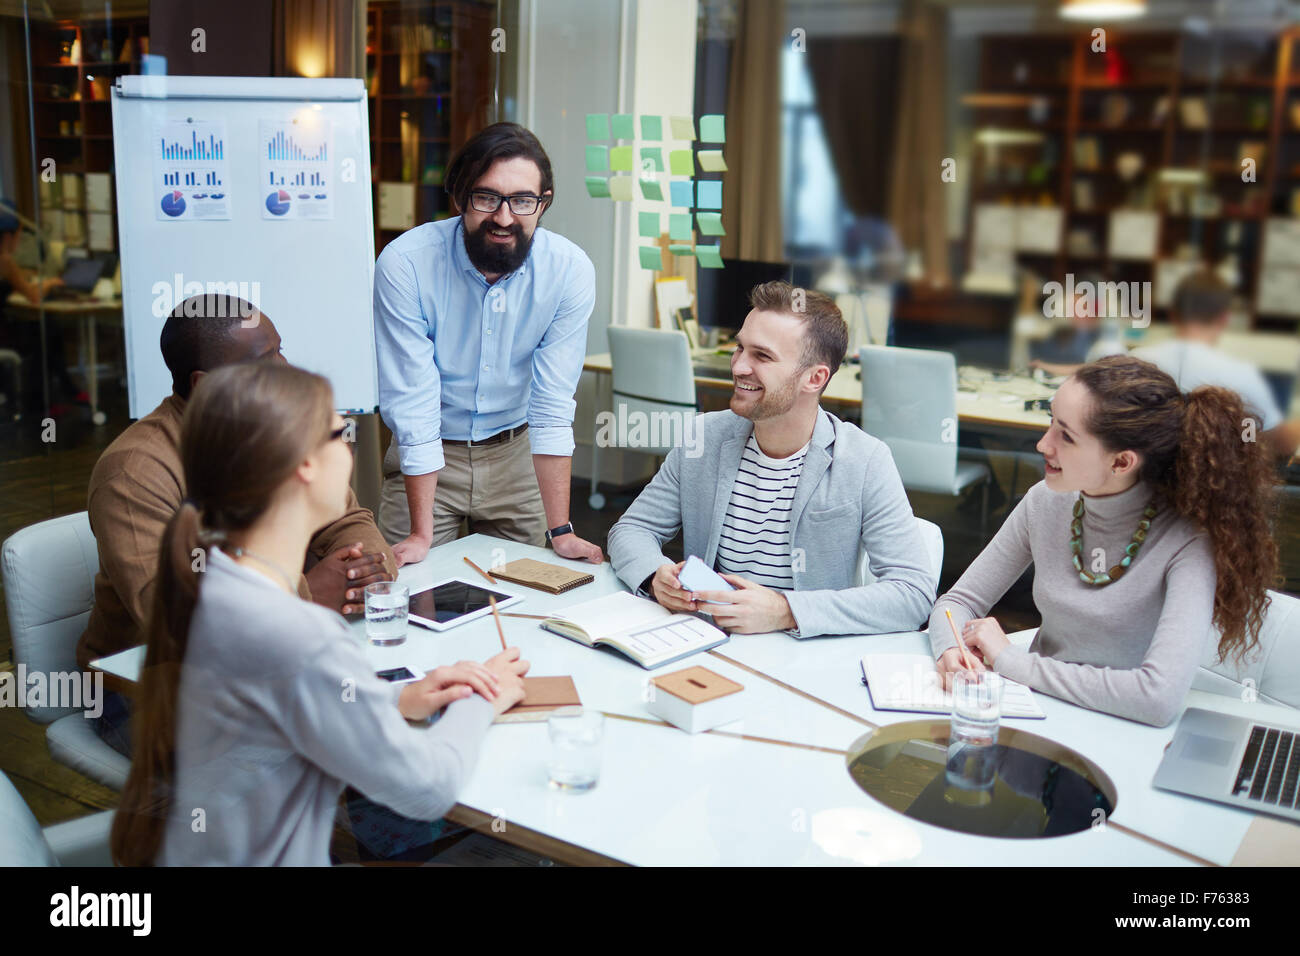 Happy modern office workers discussing plans and ideas at meeting - Stock Image